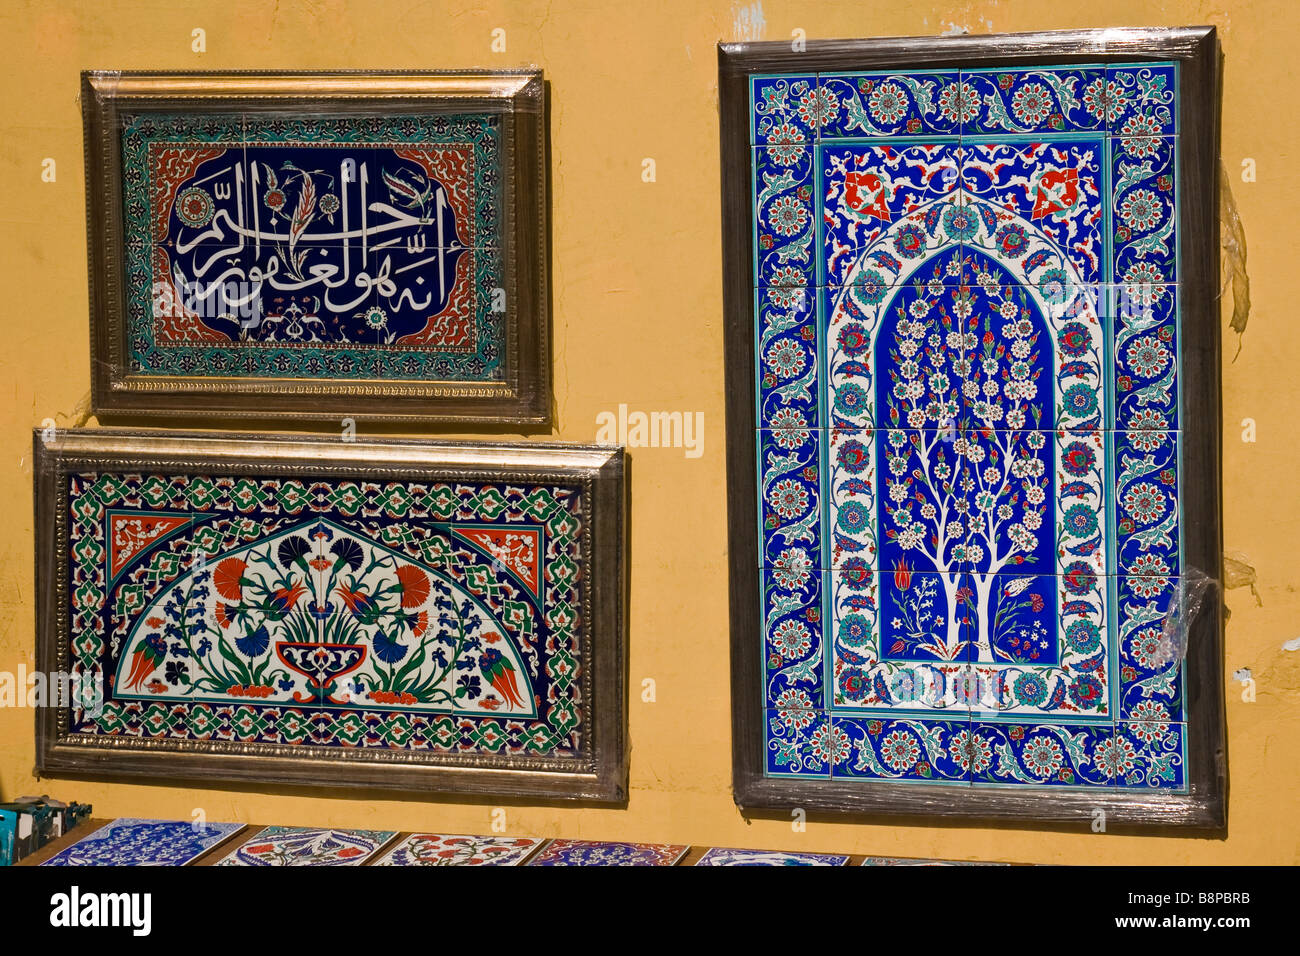 Wall tiles for sale in Turkey - Stock Image